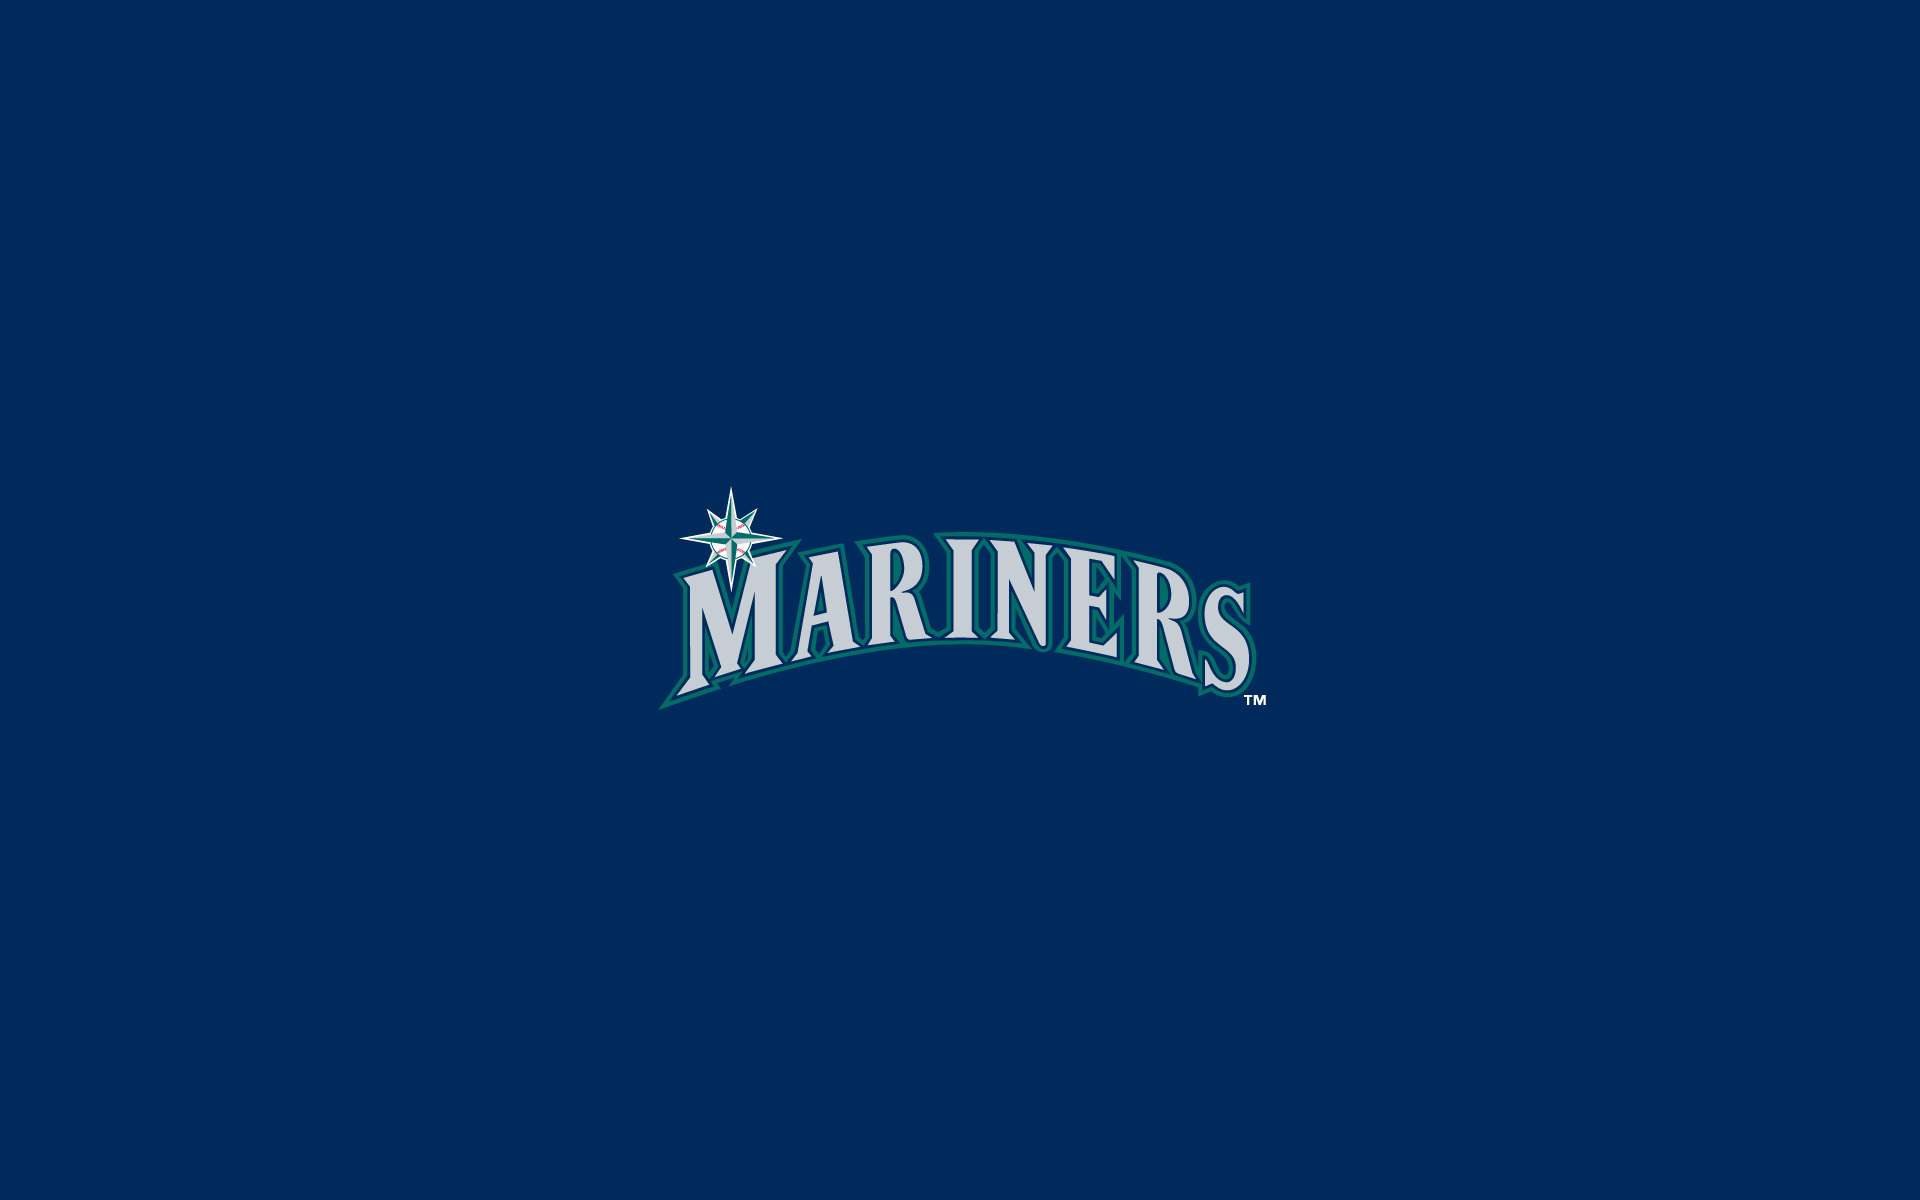 SEATTLE MARINERS mlb baseball (69) wallpaper background